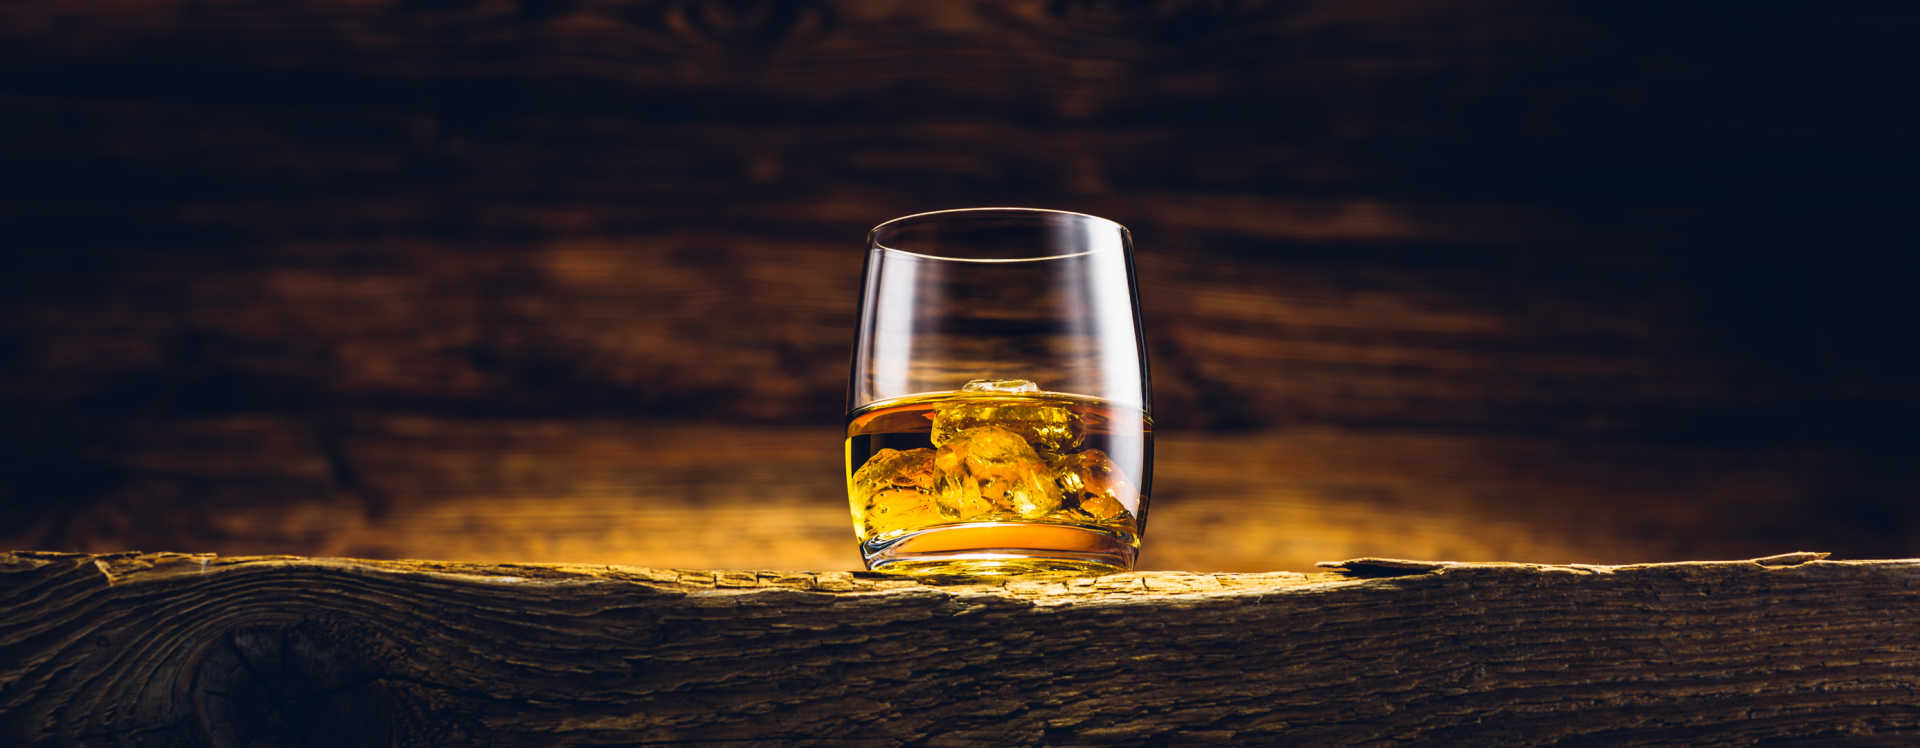 Flavors of Scotch banner image